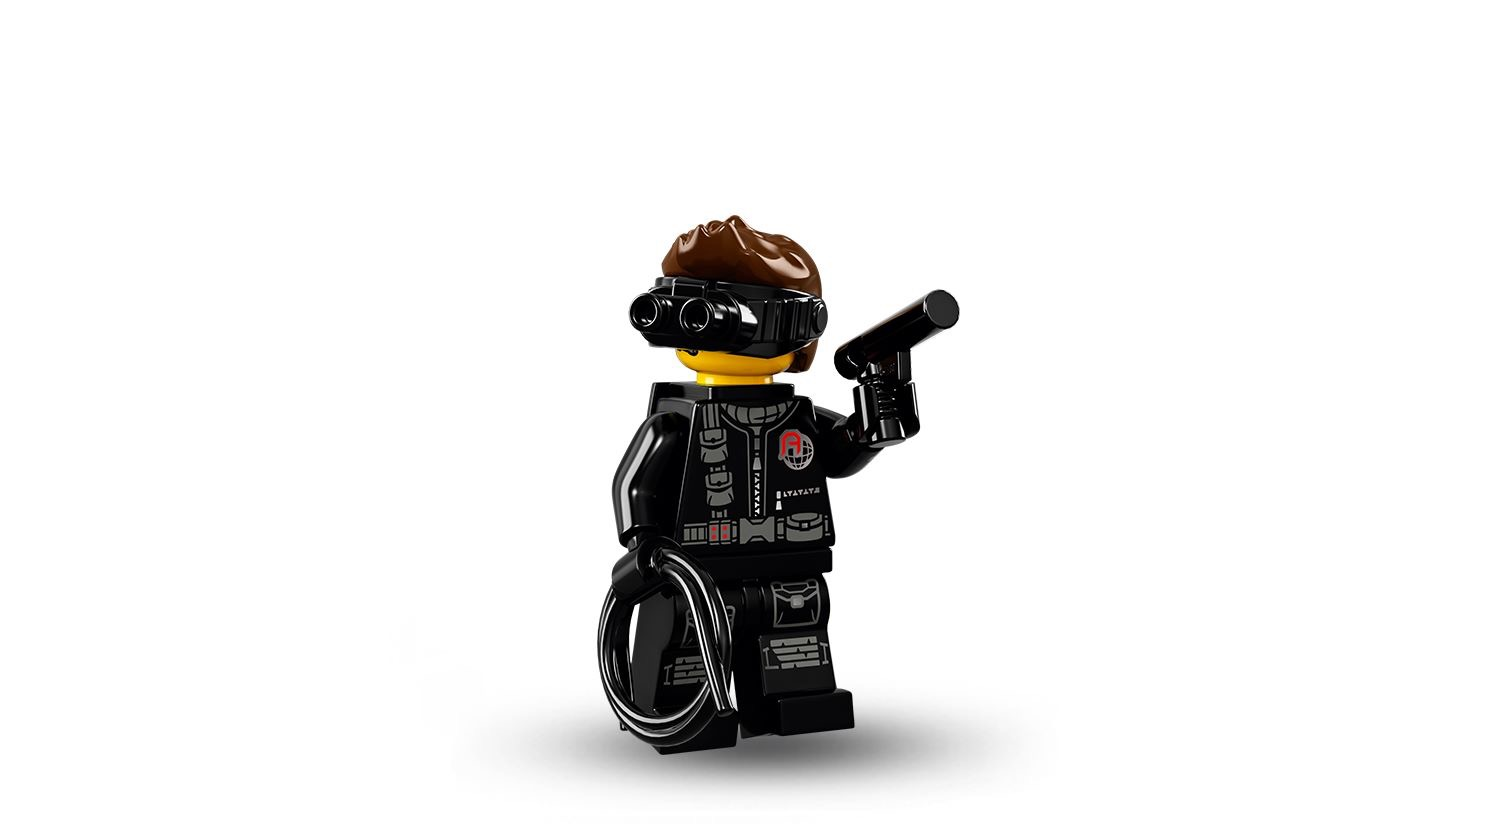 Lego Minifig Camera : The minifigure collector: lego minifigures series 16 images